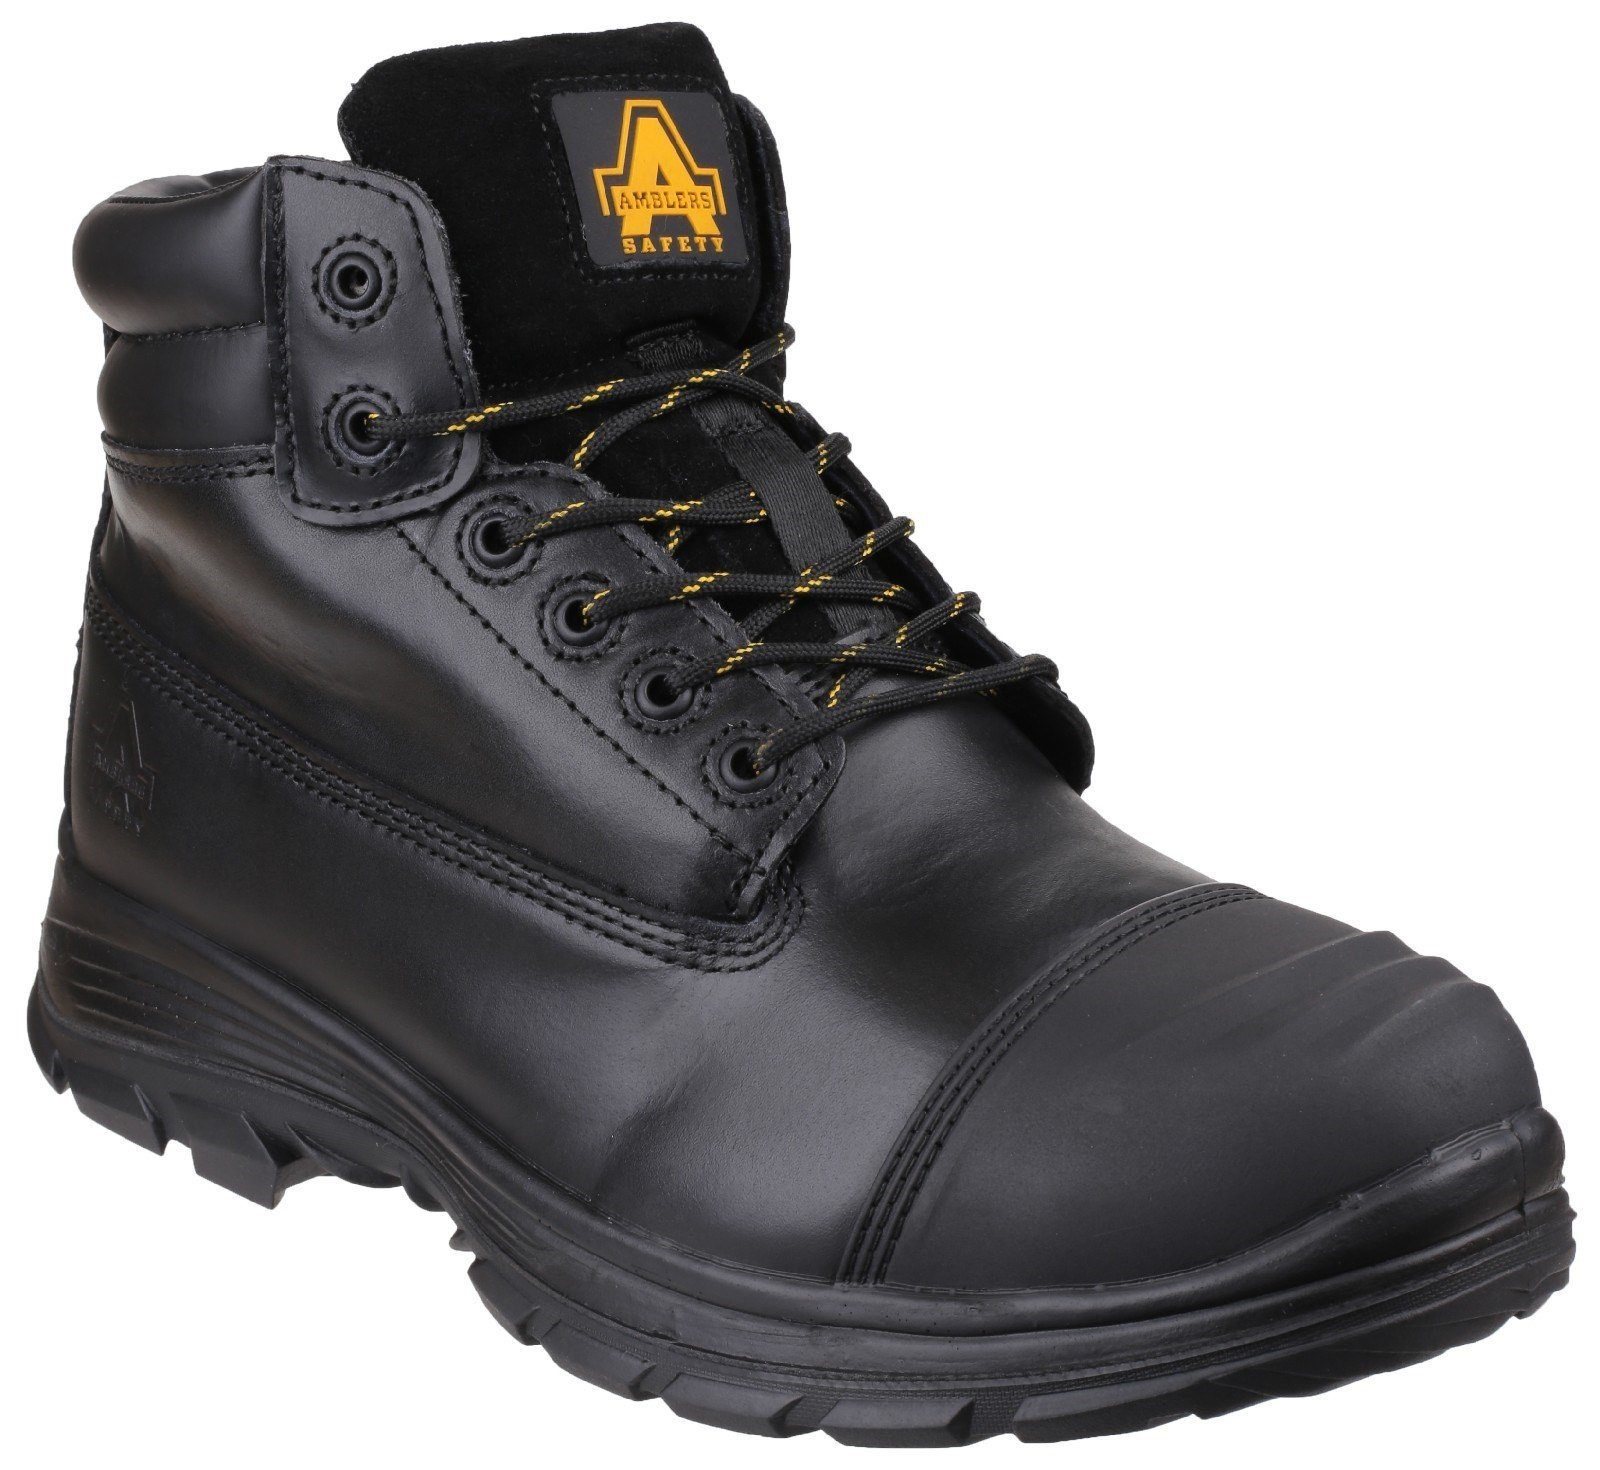 Amblers Unisex Safety Brecon Water Resistant Lace Up Boot Black 23743 - Black 6